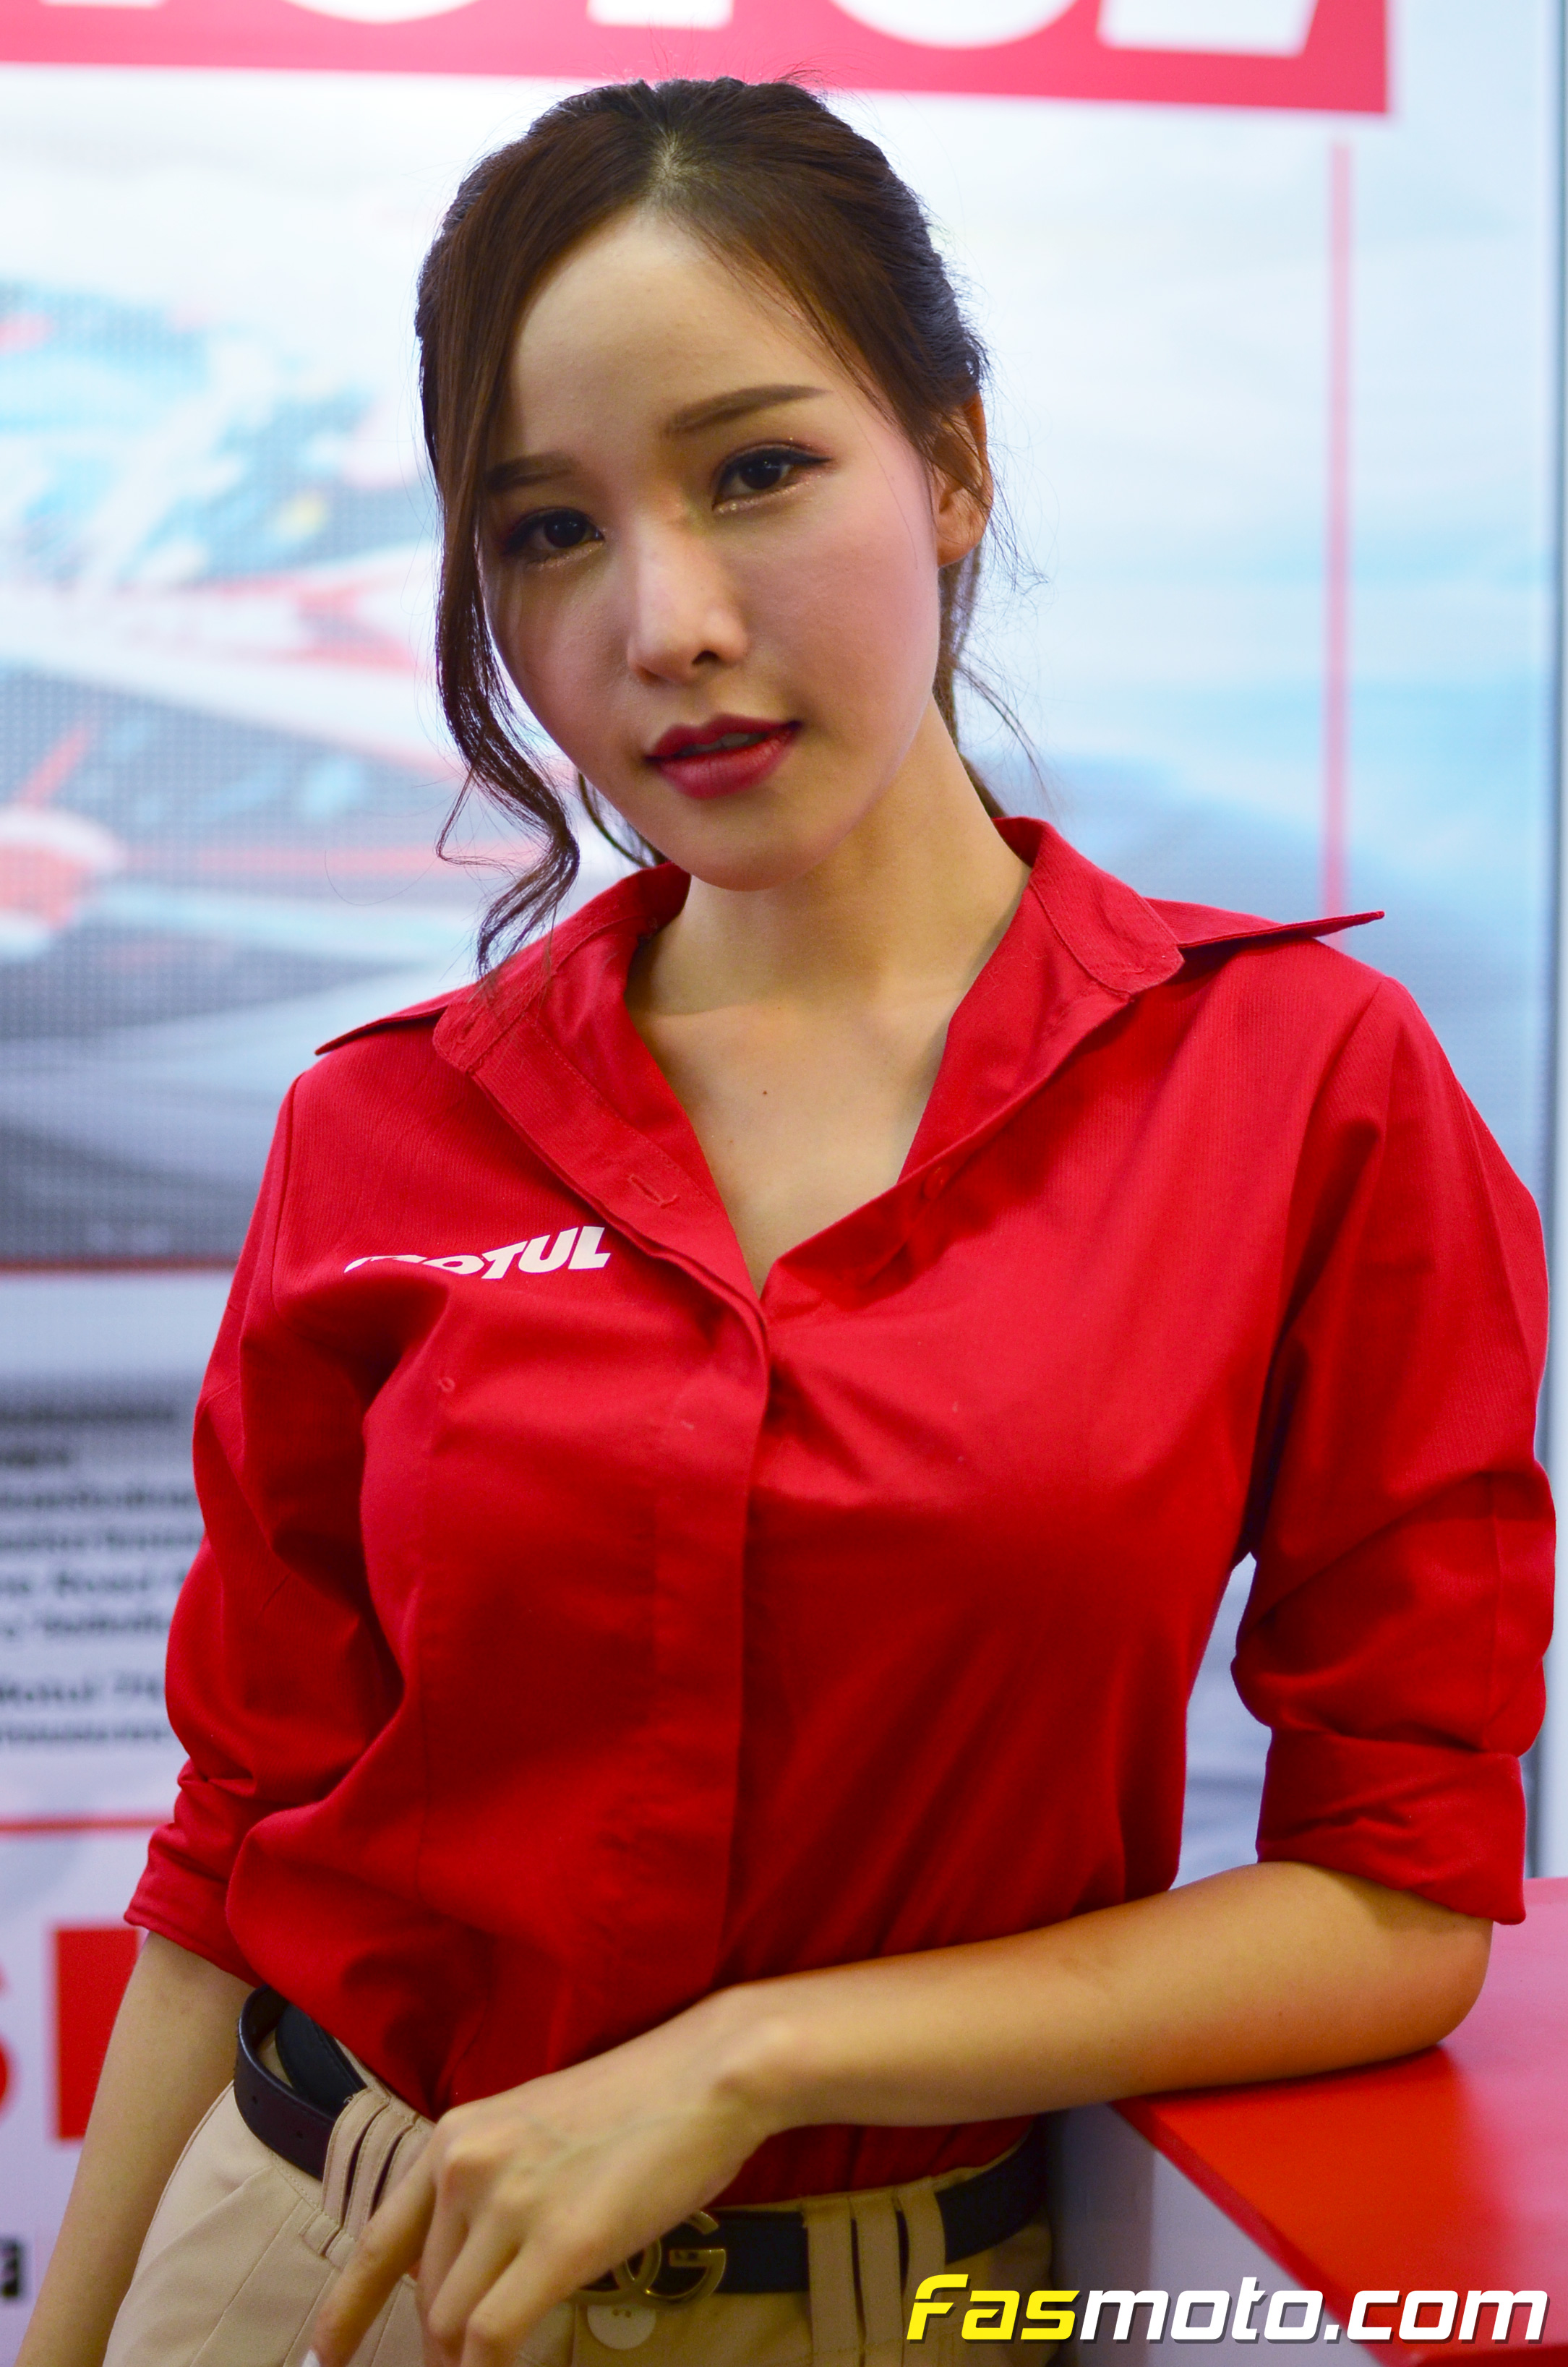 The Bangkok Motor Show 2019 - Show Girls - Motul